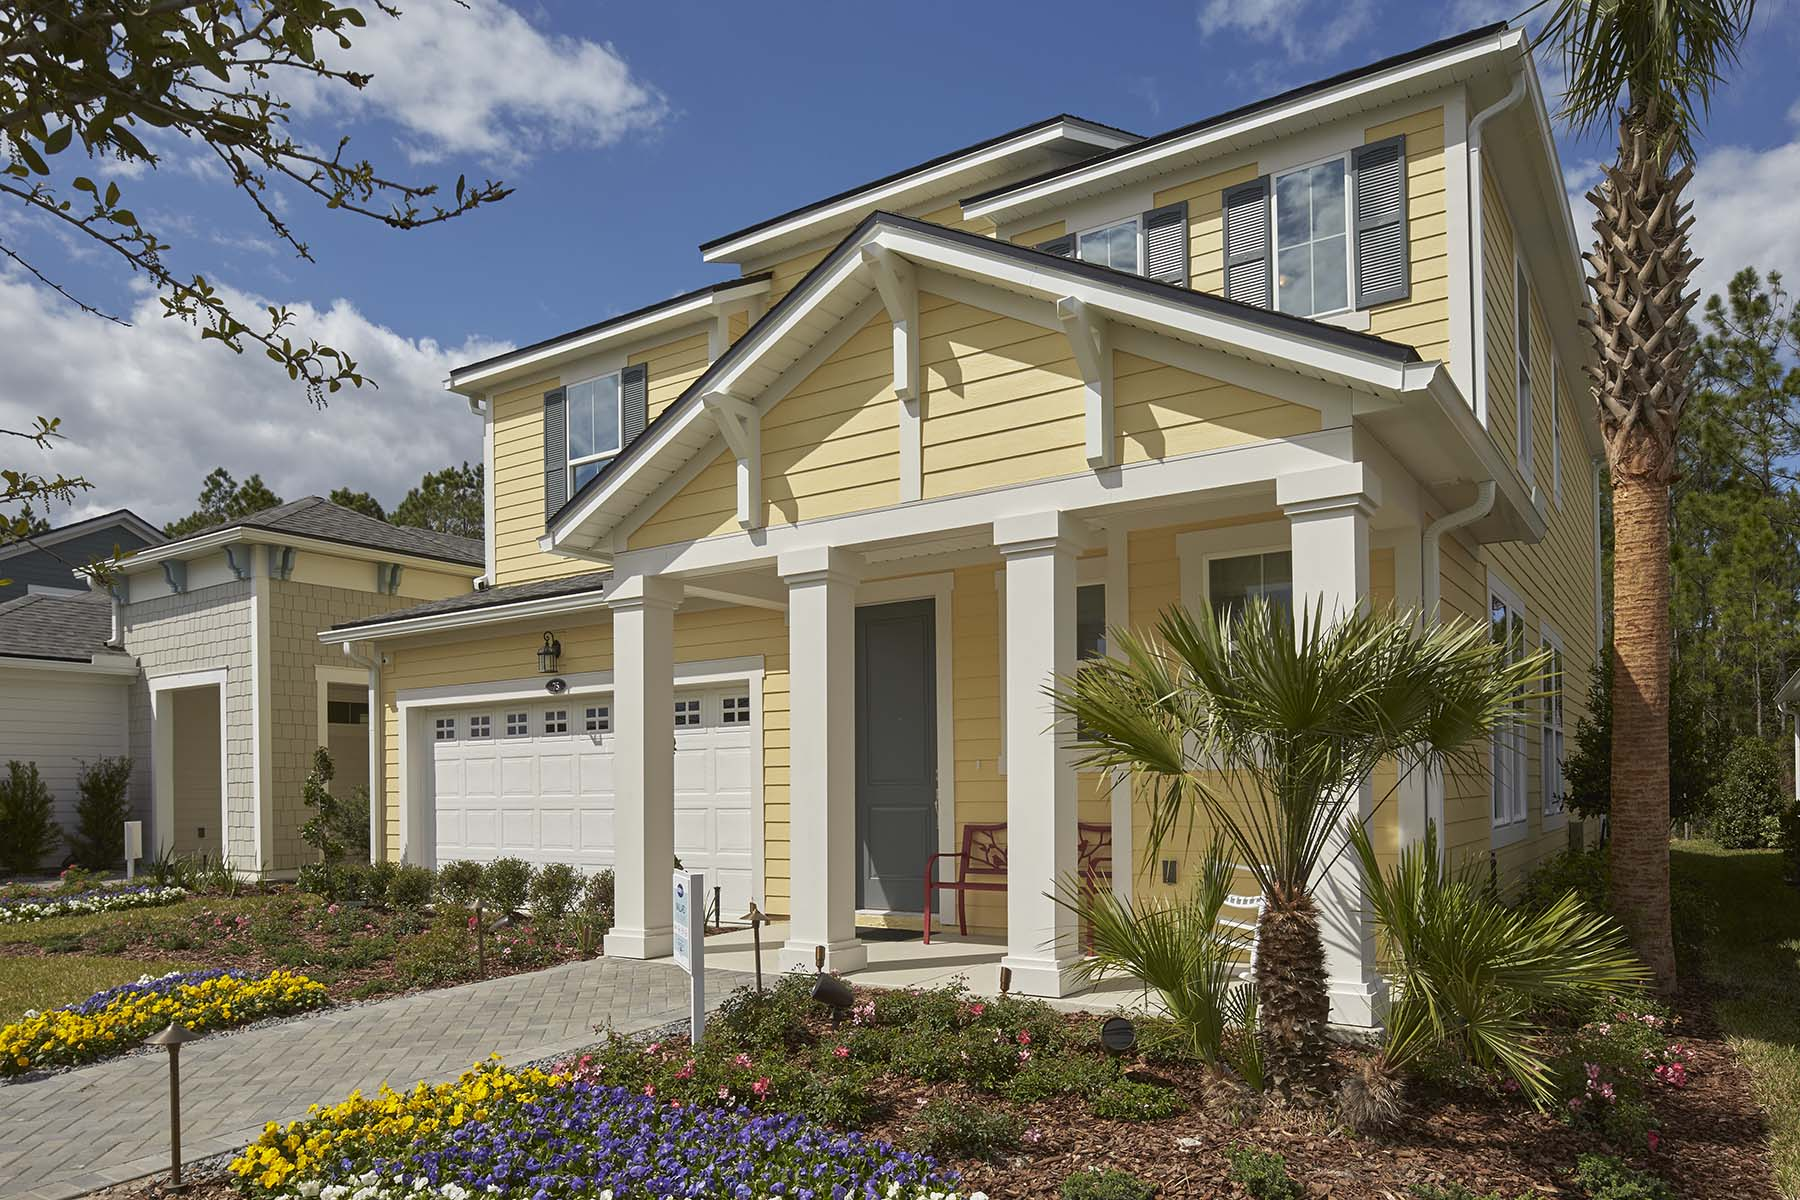 Mallard Plan Elevation Front at RiverTown - Arbors in St. Johns Florida by Mattamy Homes